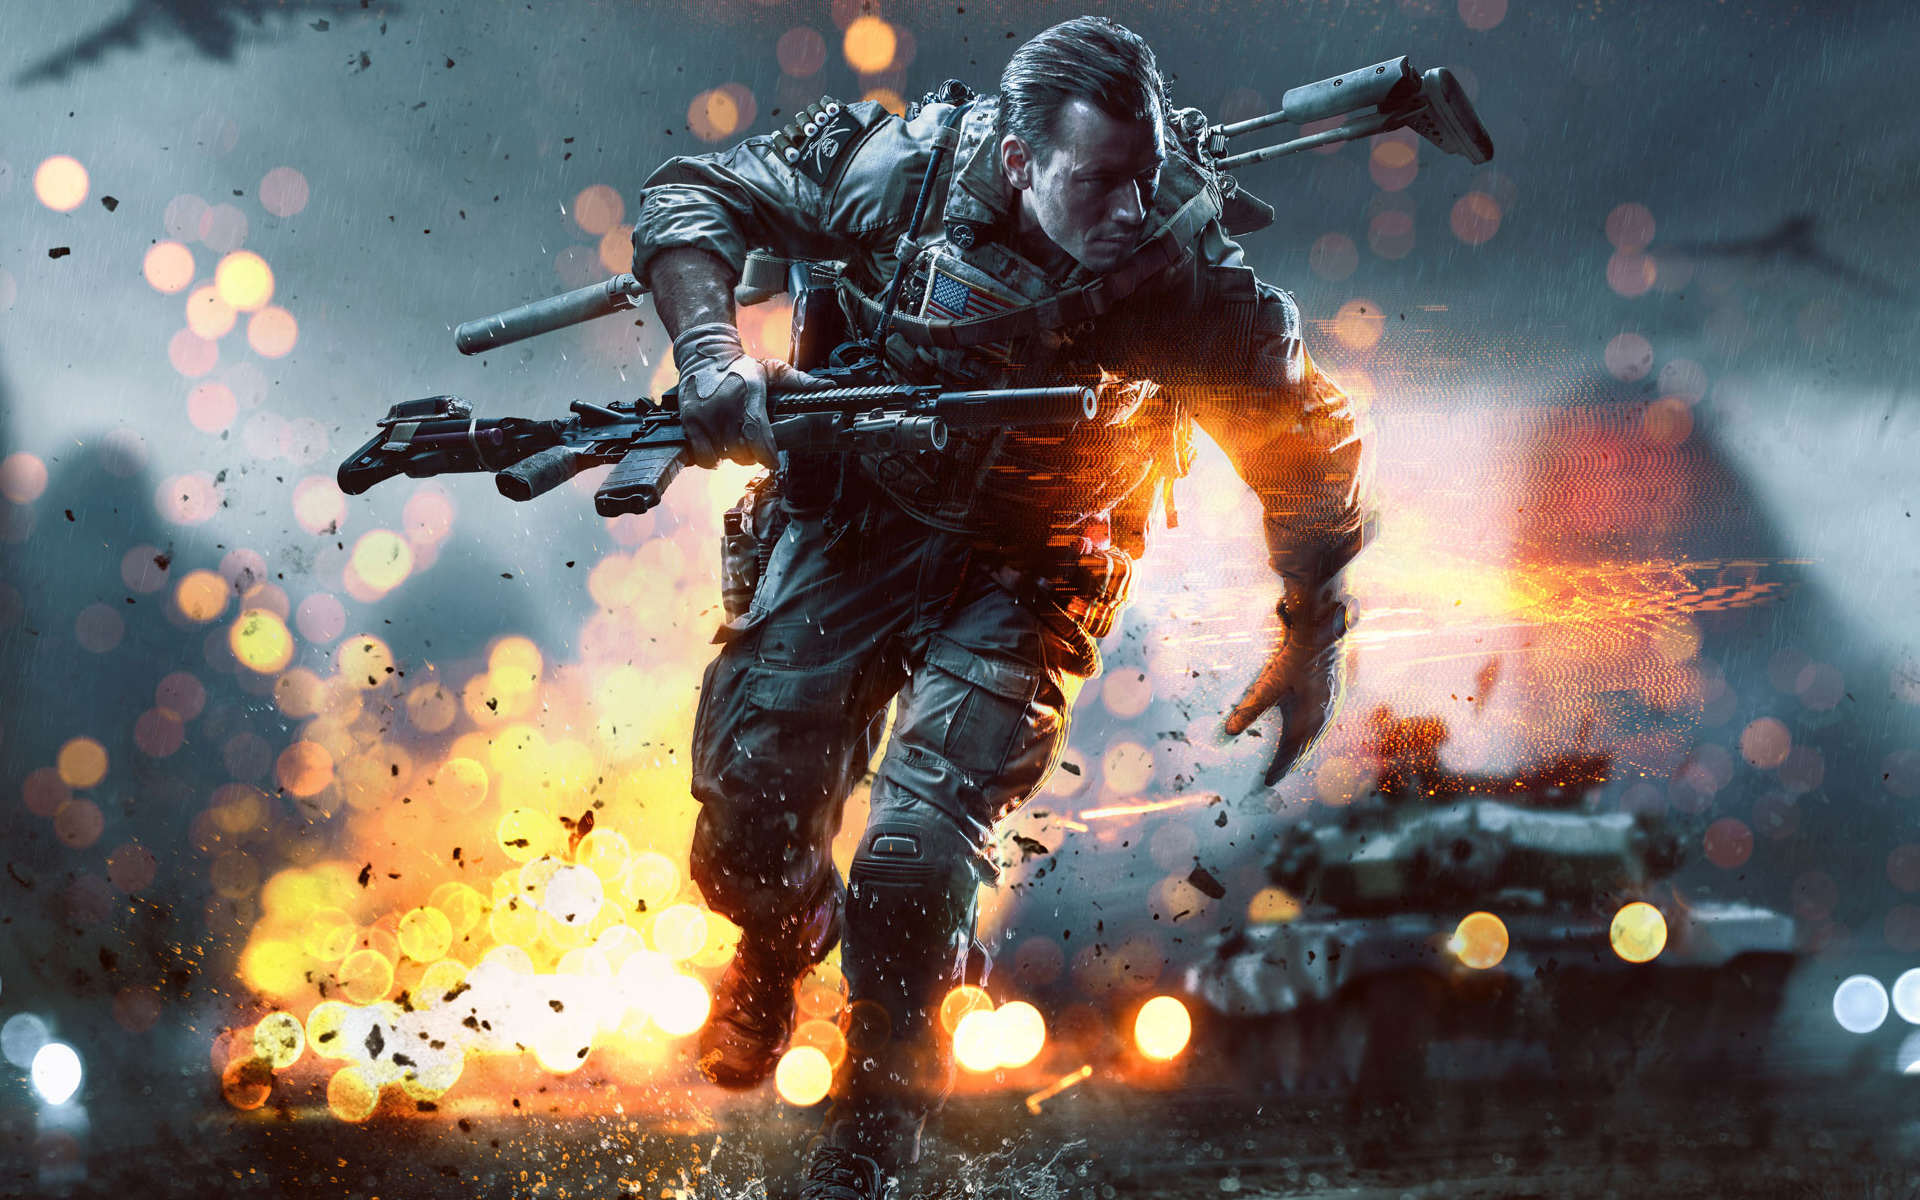 battlefield 4 china rising wide Battlefield TV Show In The Works, Heres What We Know